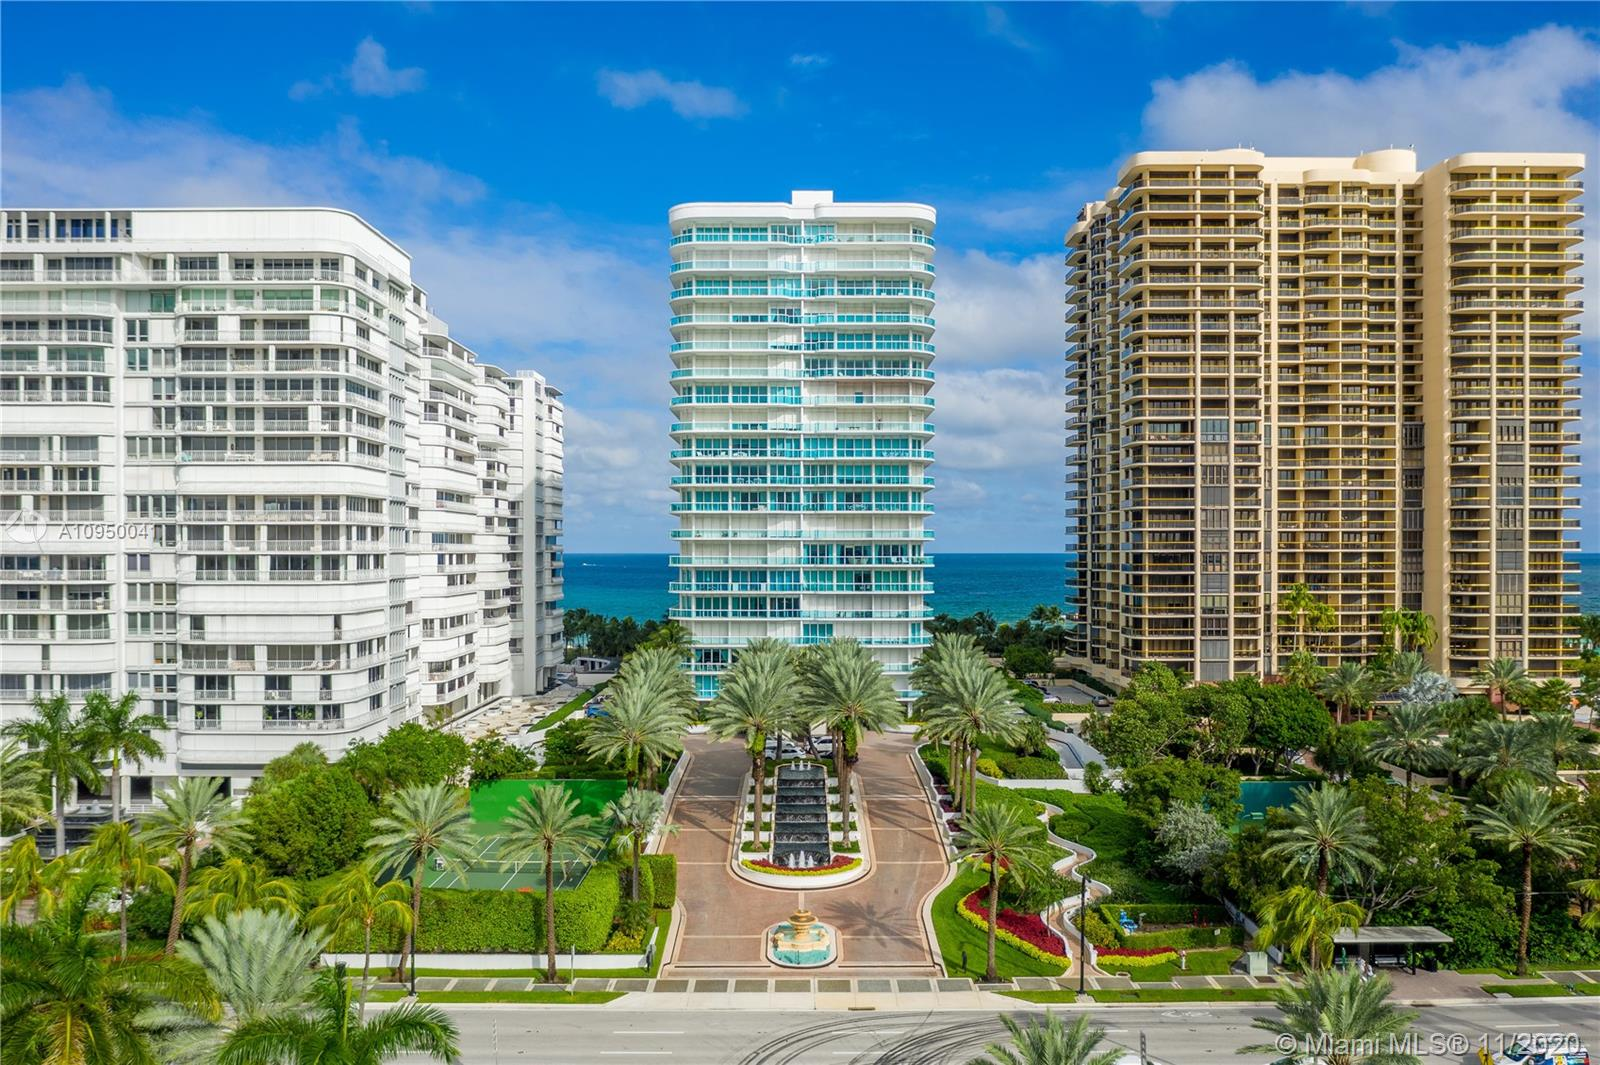 Palace at Bal Harbour image #32